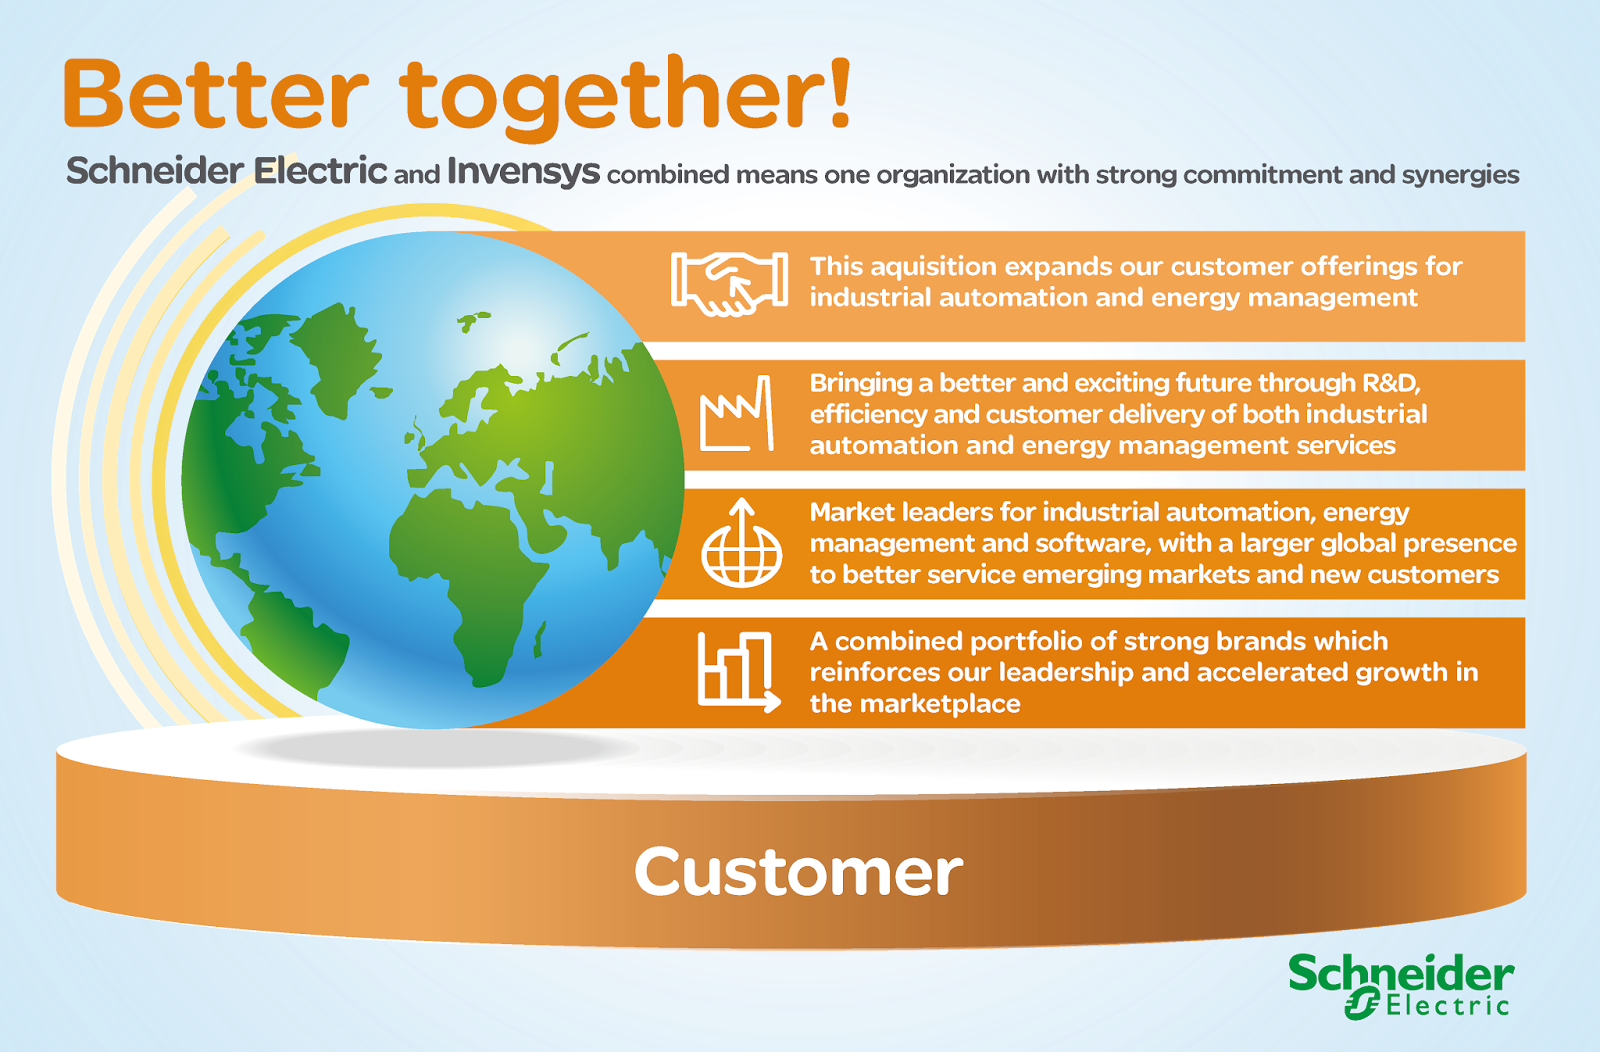 Why Schneider Electric and Invensys are better together for the customer